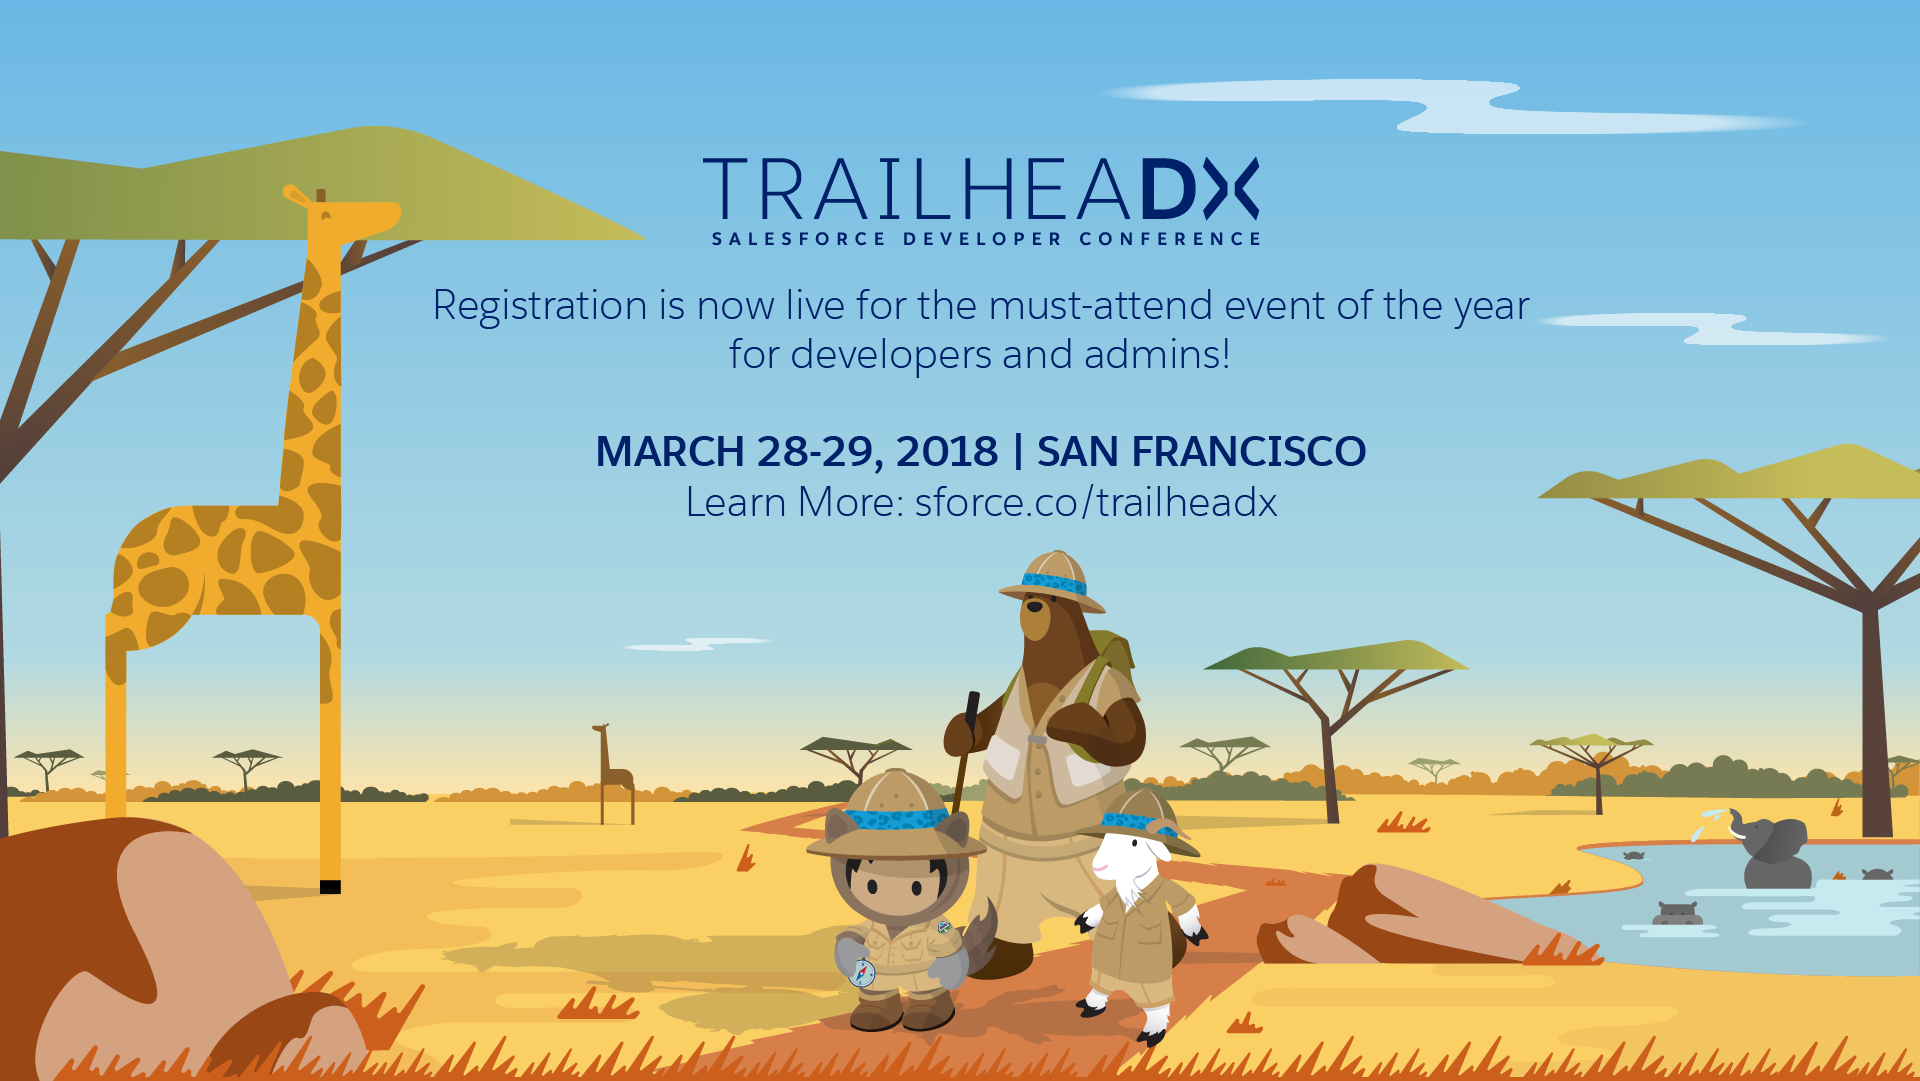 TrailheaDX: 2017 Salesforce Developer Conference